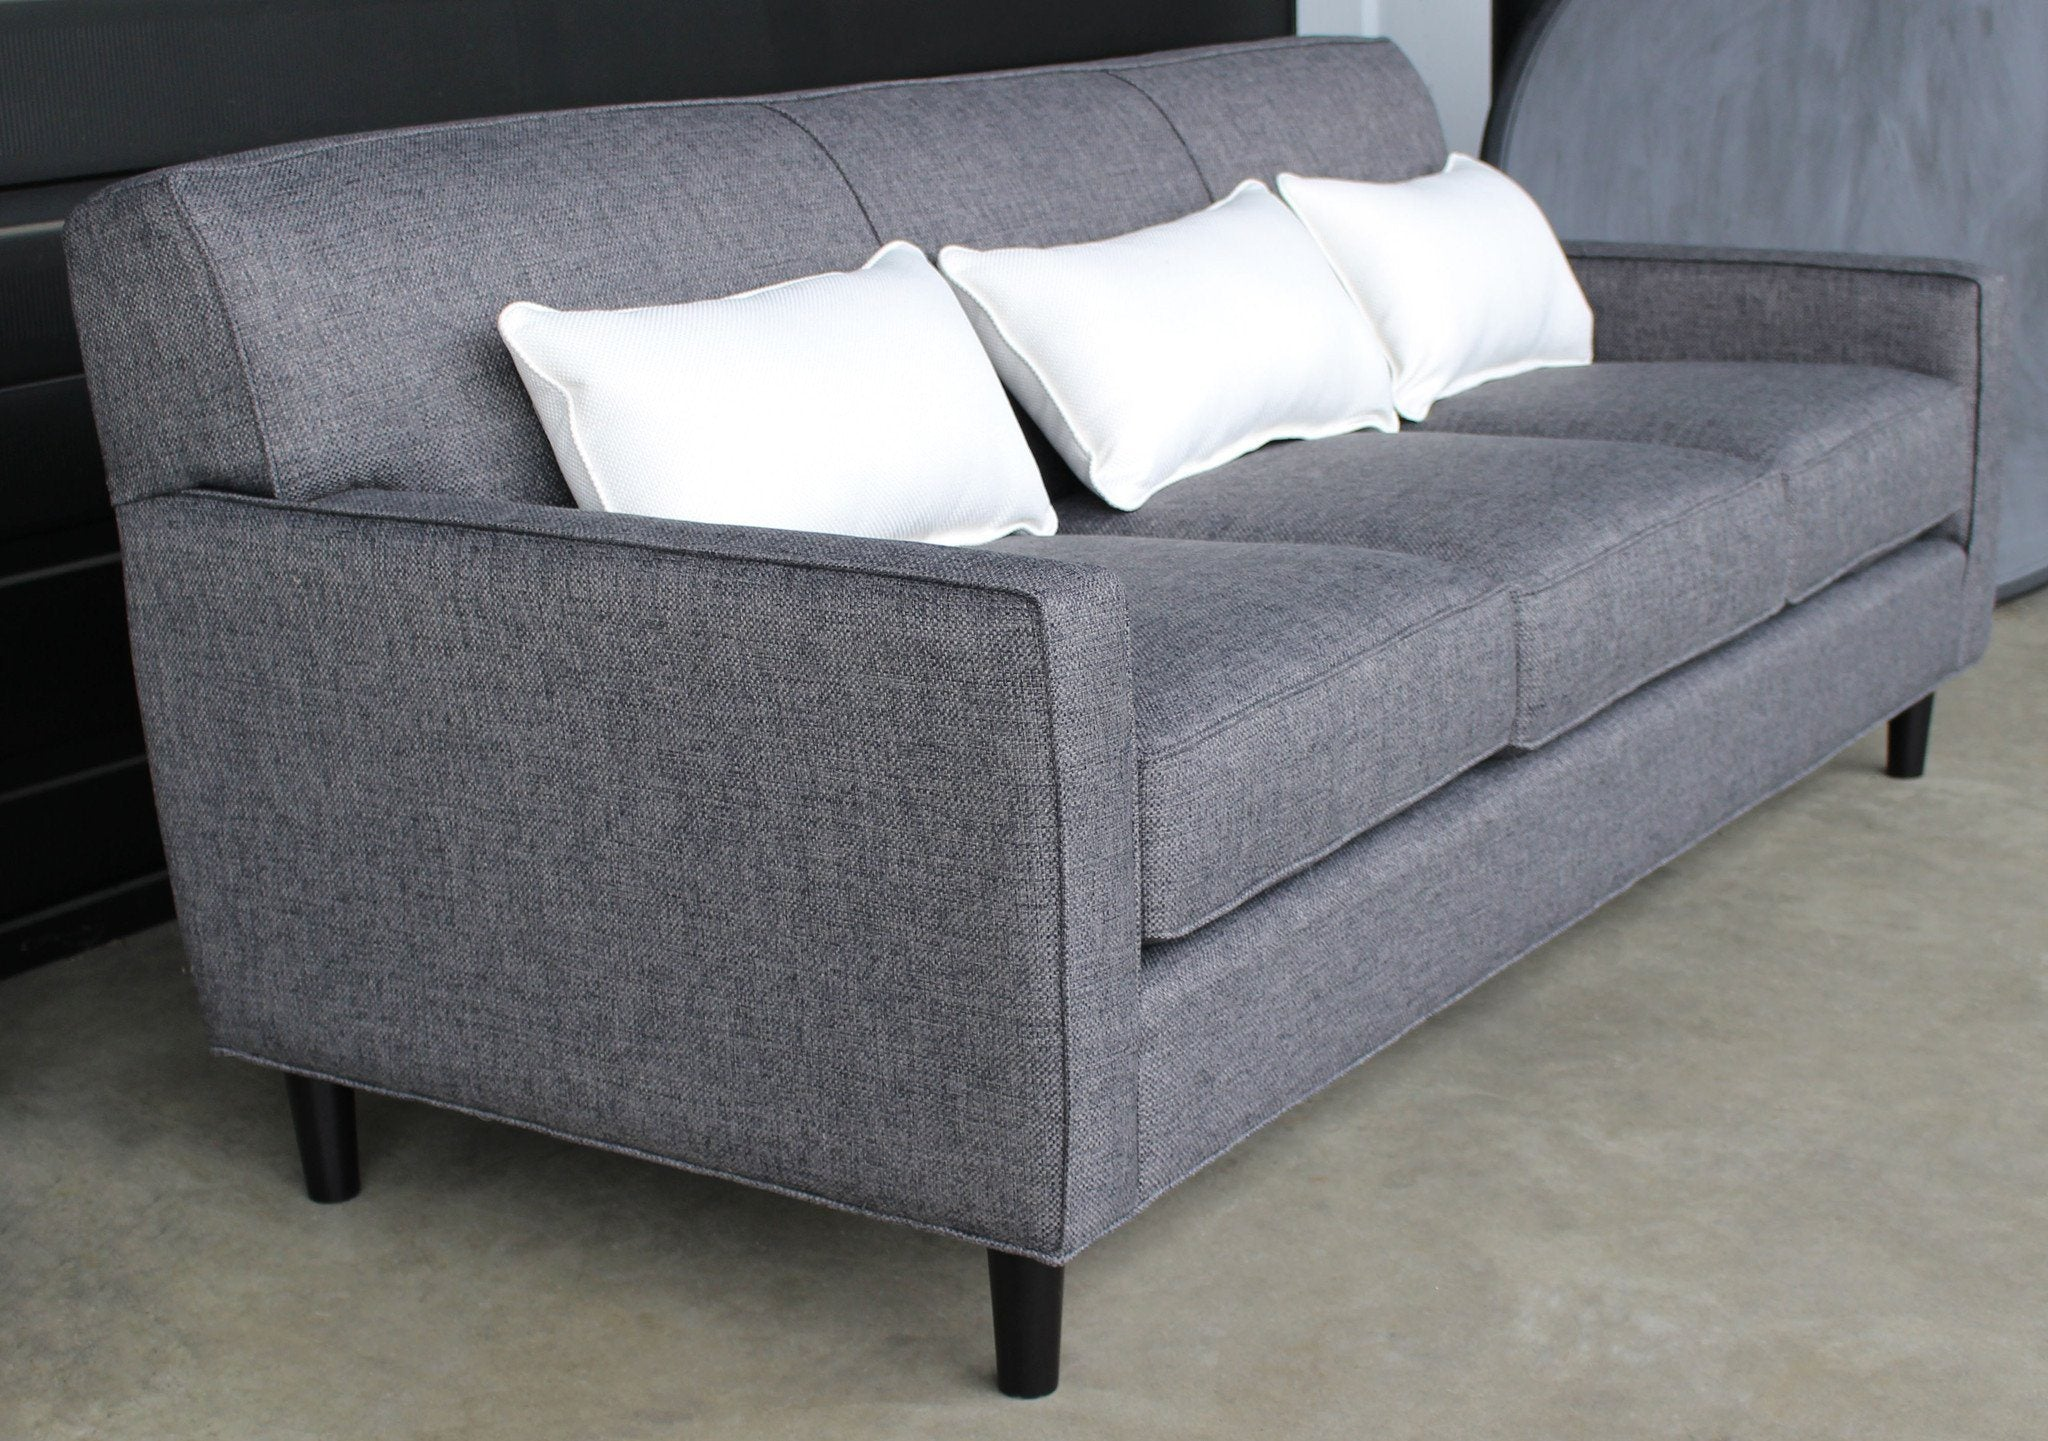 Delano Sofa - Calgary Furniture